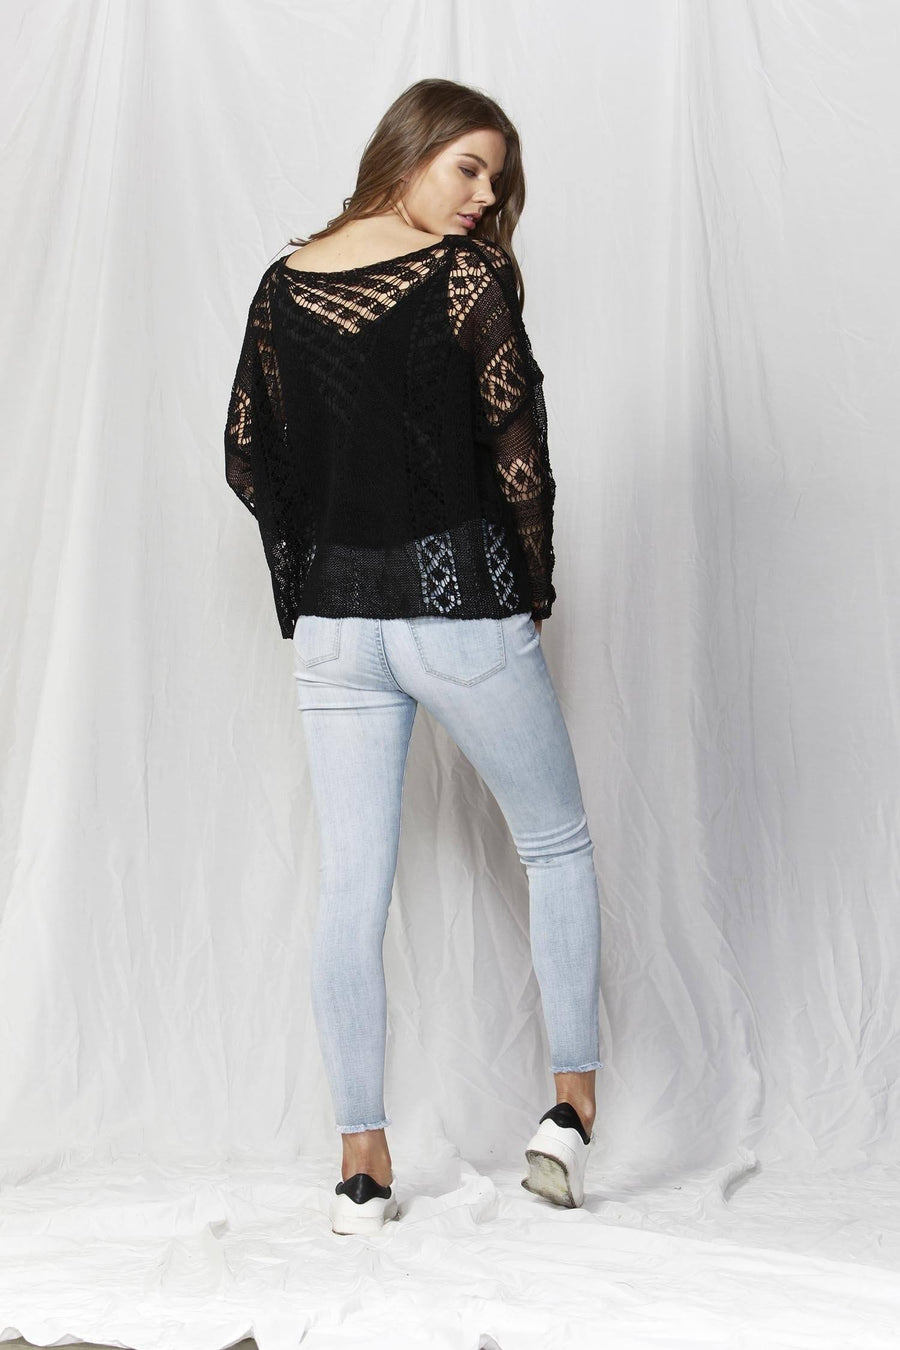 Covent Garden Knit Top in Black